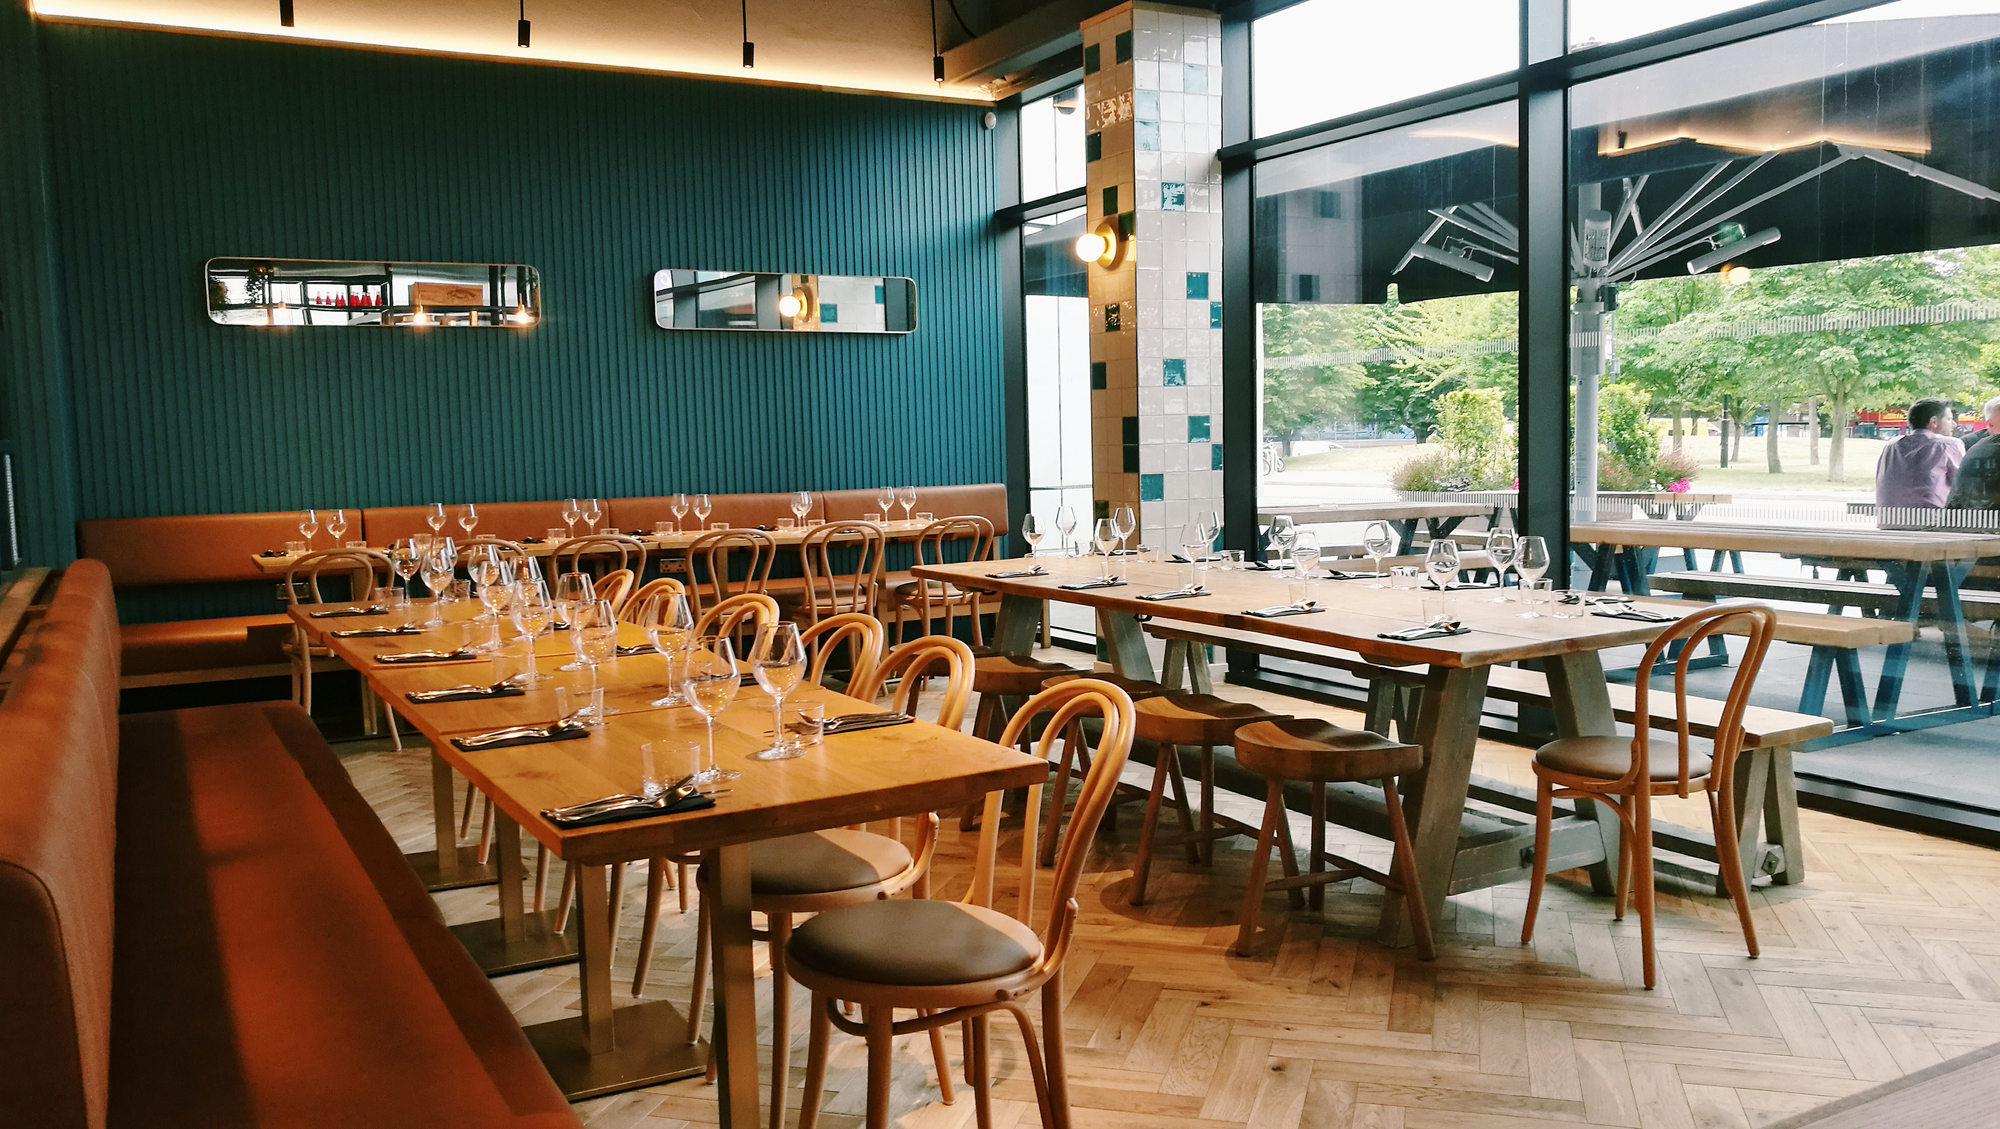 Wellbourne Brasserie london restaurants private hire events light bright modern venues